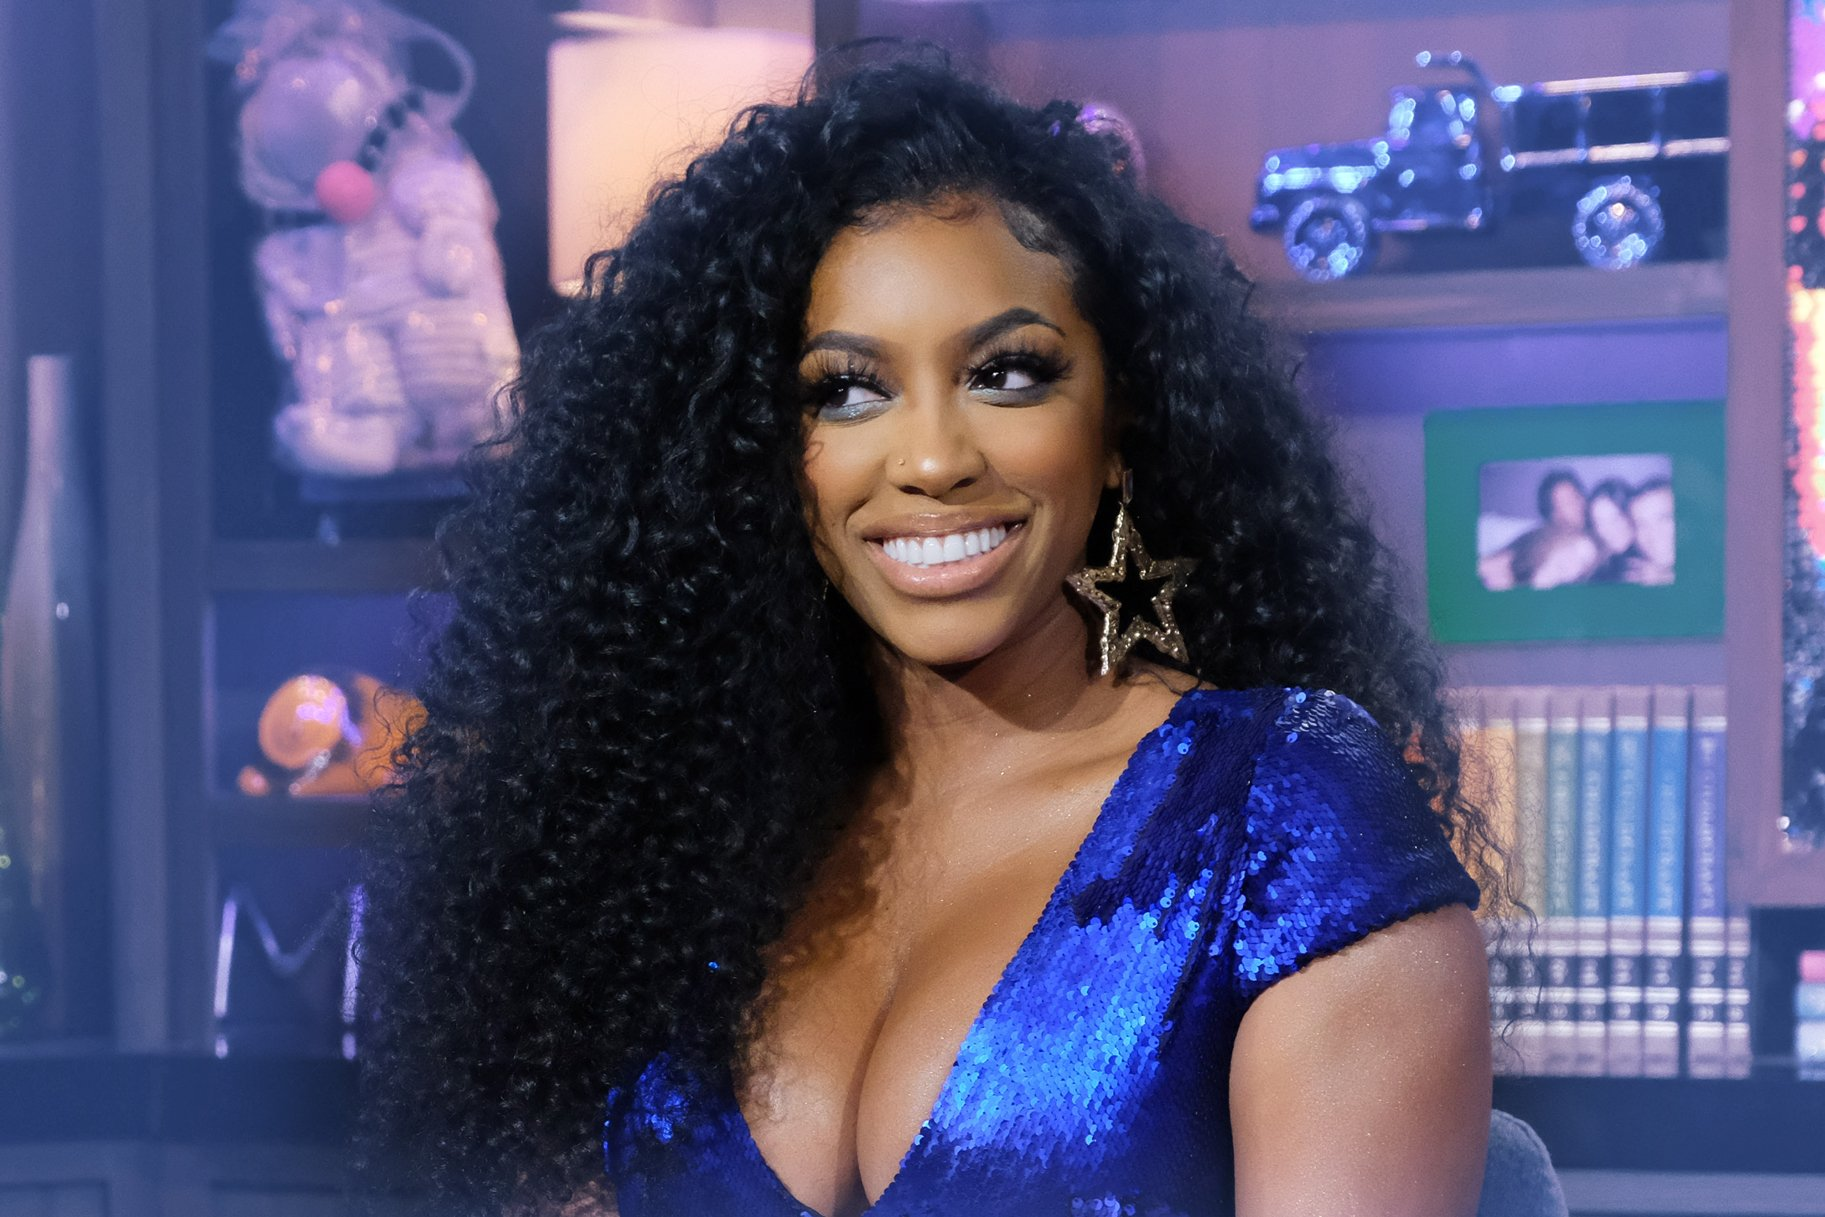 Porsha Williams Discusses What's At Stake In The Georgia Run-Off Elections